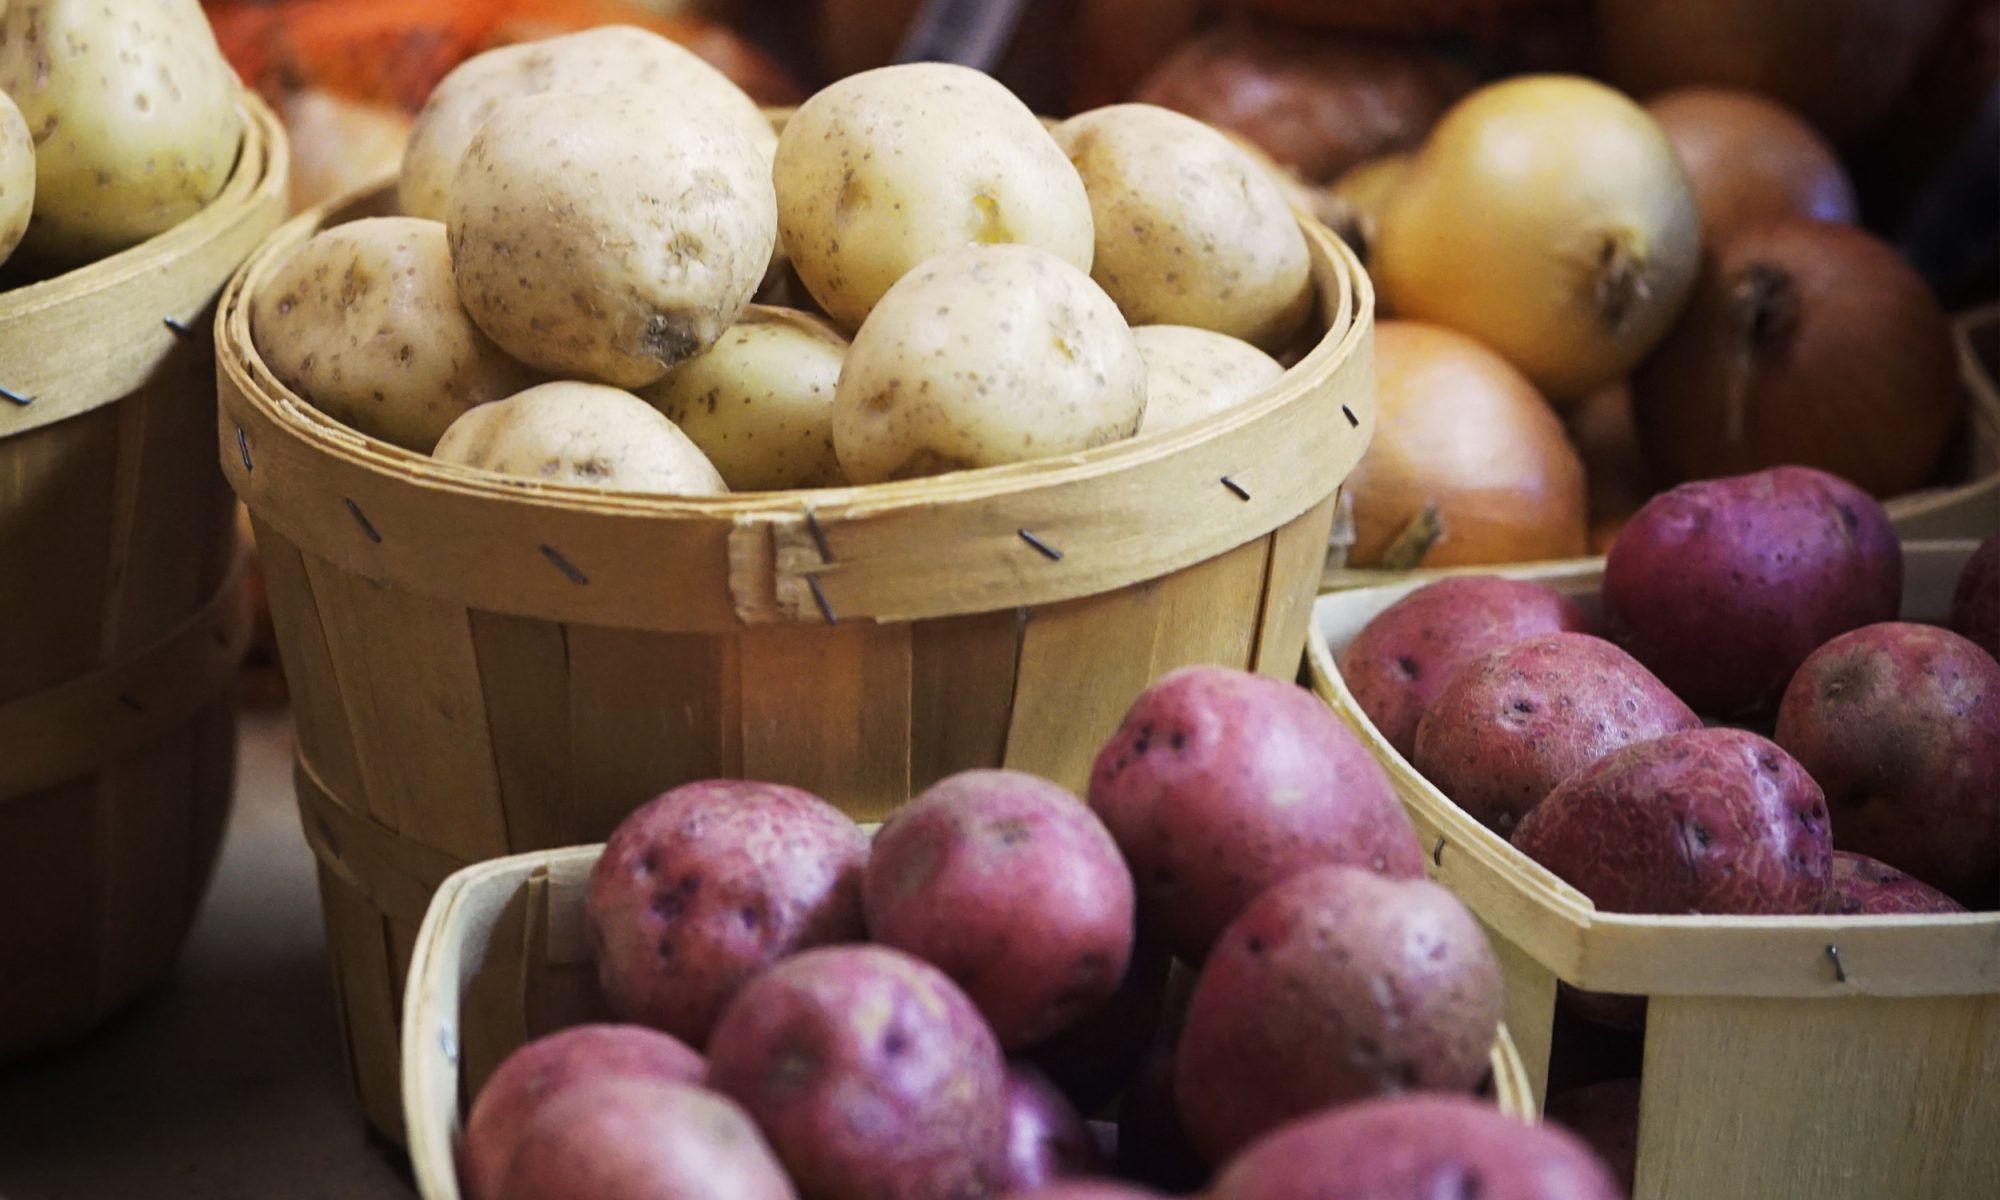 What's the Difference Between Russet, Red, and Yukon Gold Potatoes?